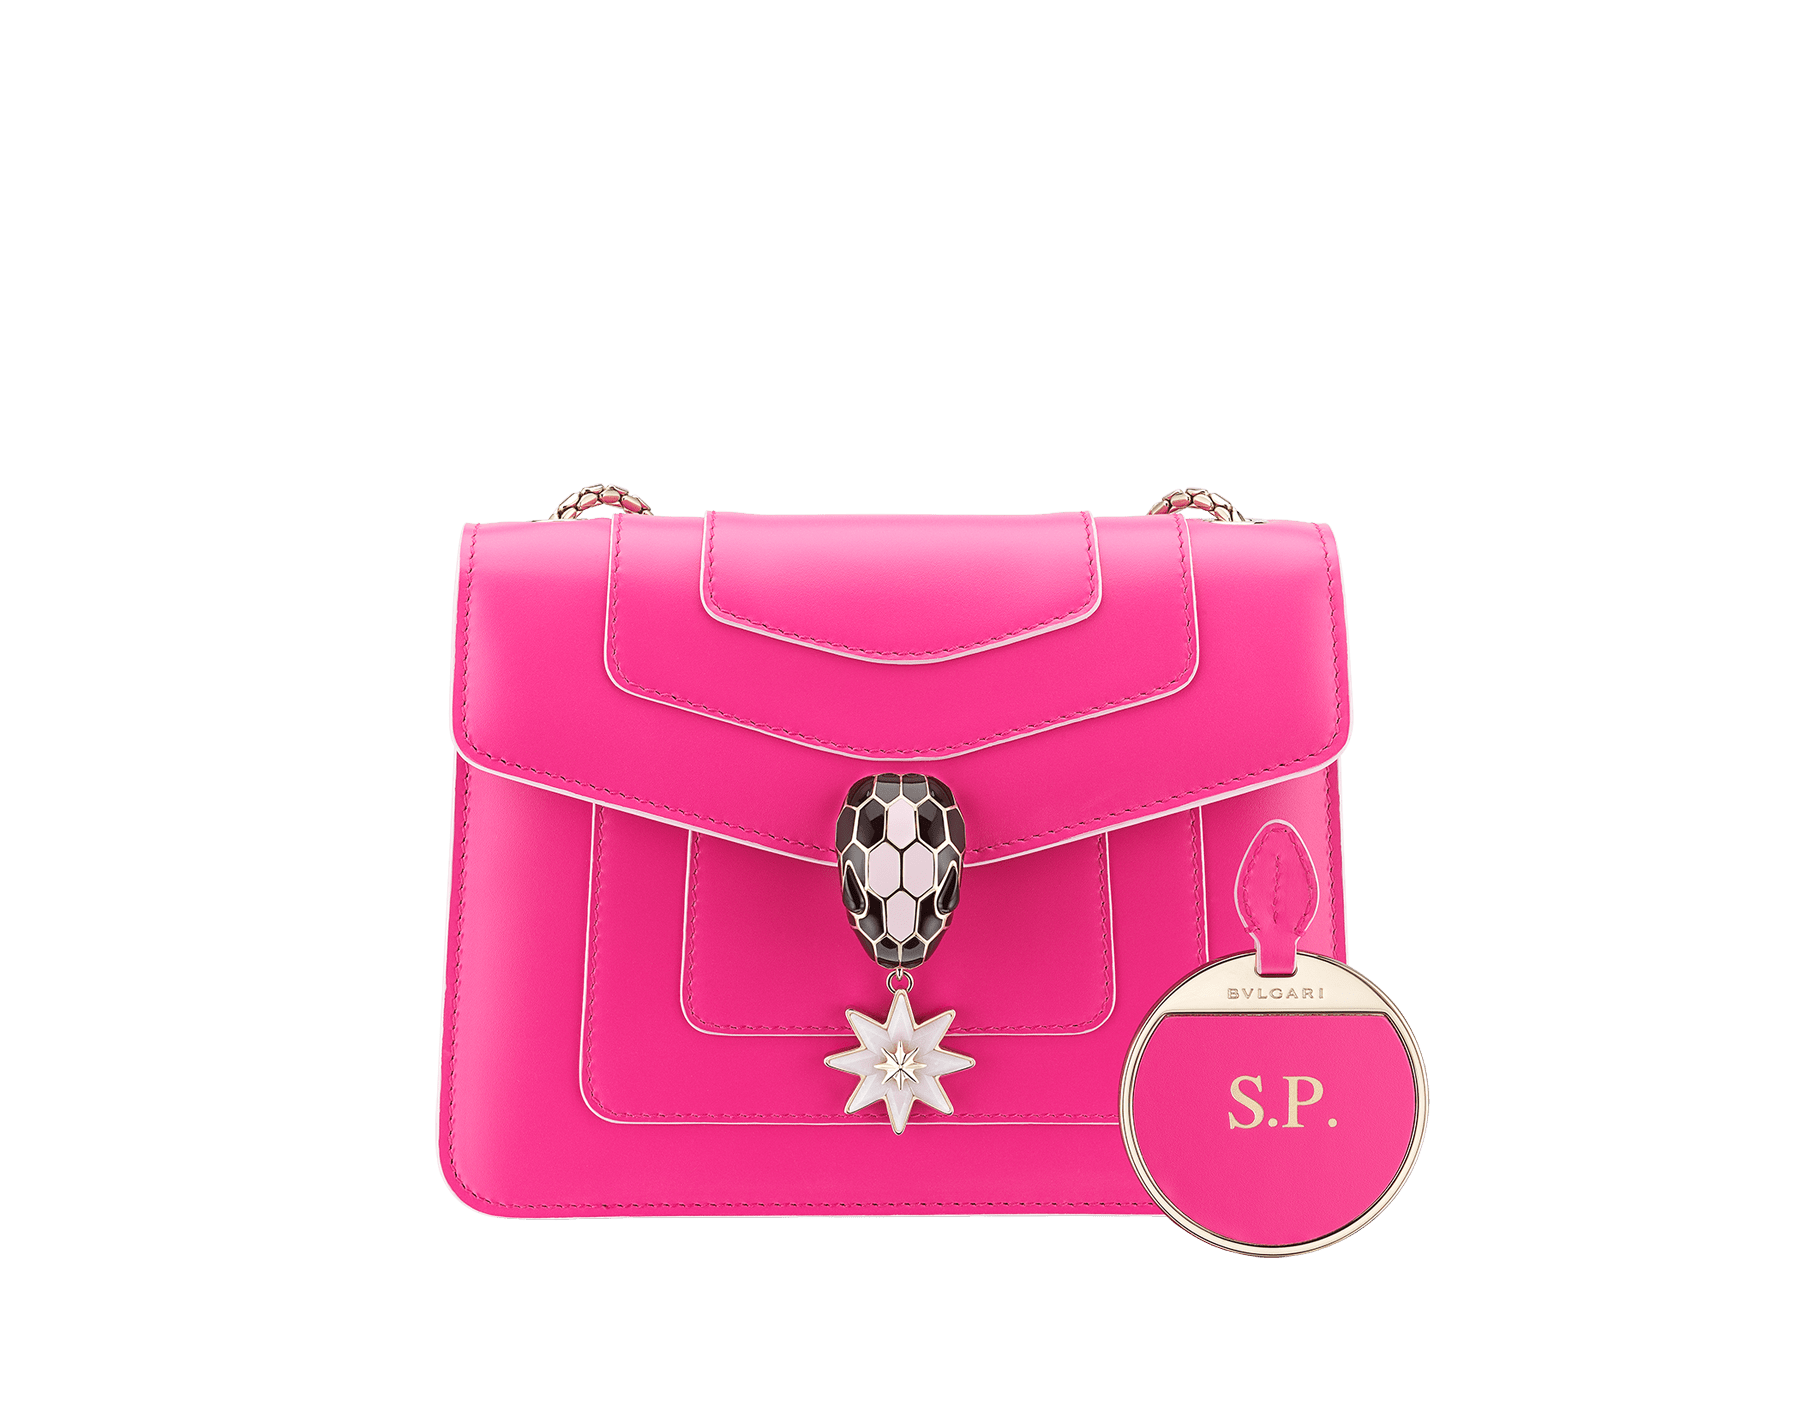 Serpenti Forever Holiday Season crossbody bag in flash amethyst calf leather and rose quartz brushed metallic calf leather. Snakehead closure in light gold plated brass embellished with black and sakura pink enamel, black onyx eyes and a pink opal eight-pointed star charm. 289367 image 3